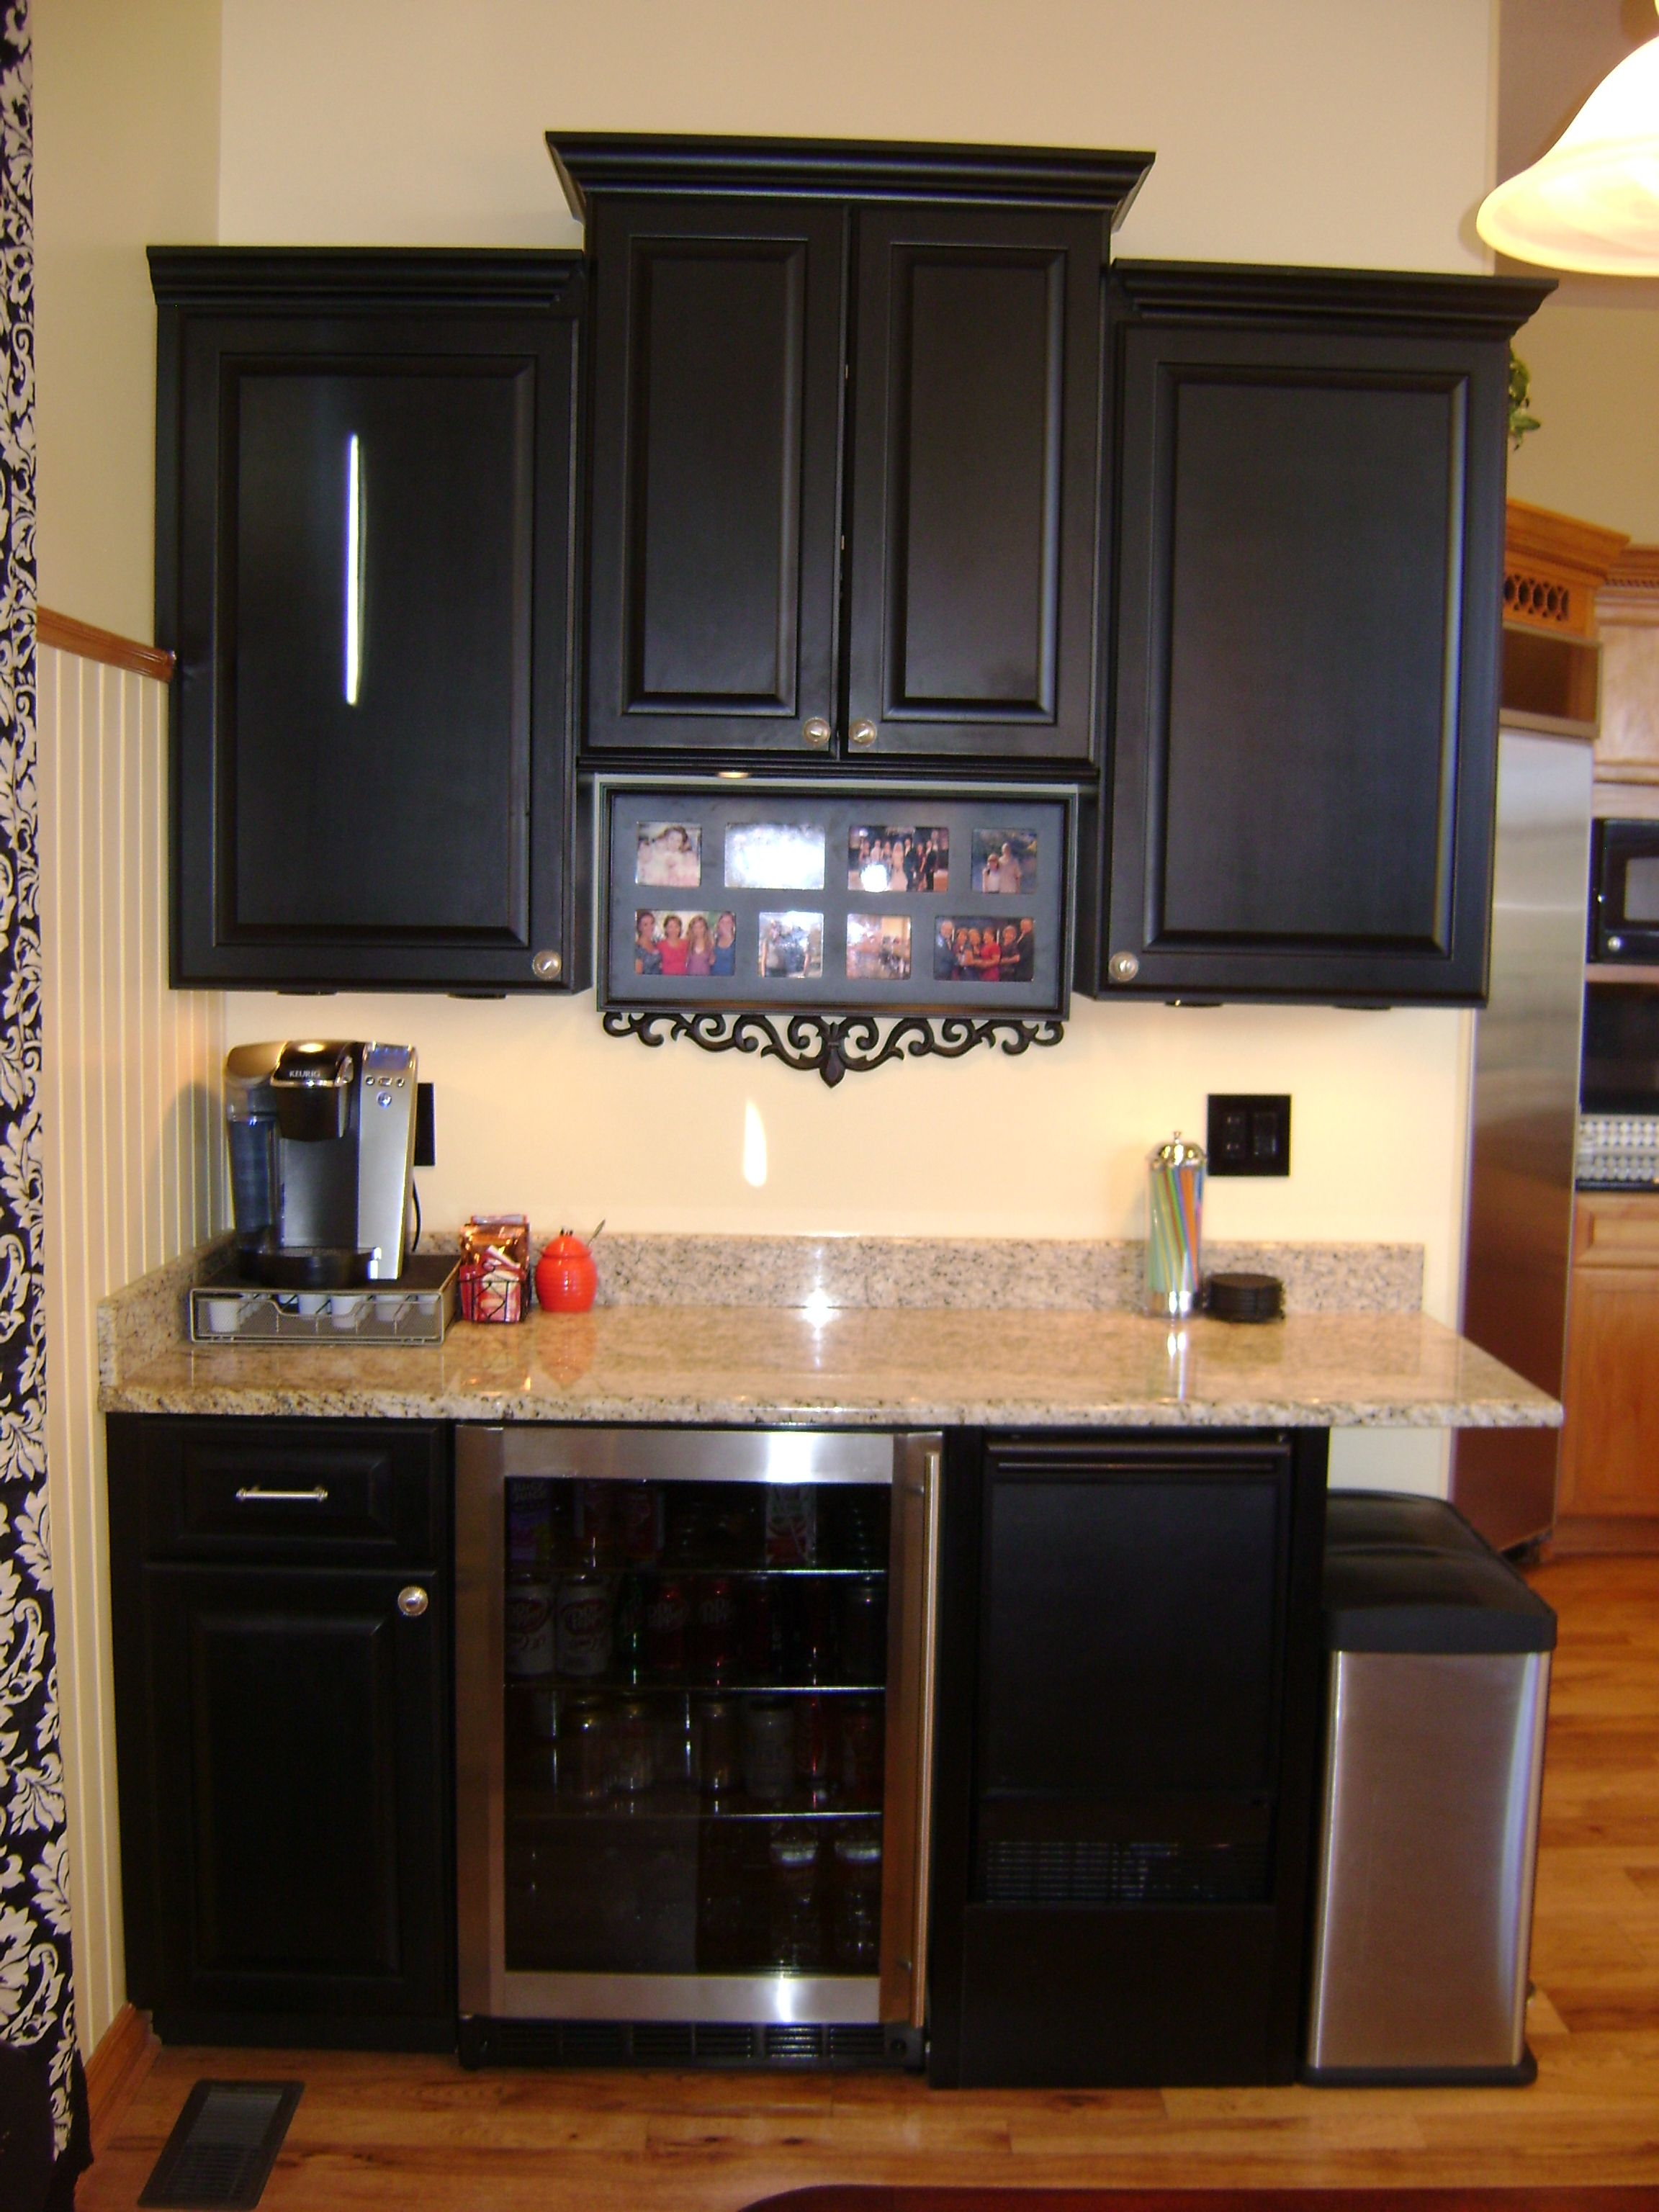 added black maple beverage center and granite. kitchen tune-up